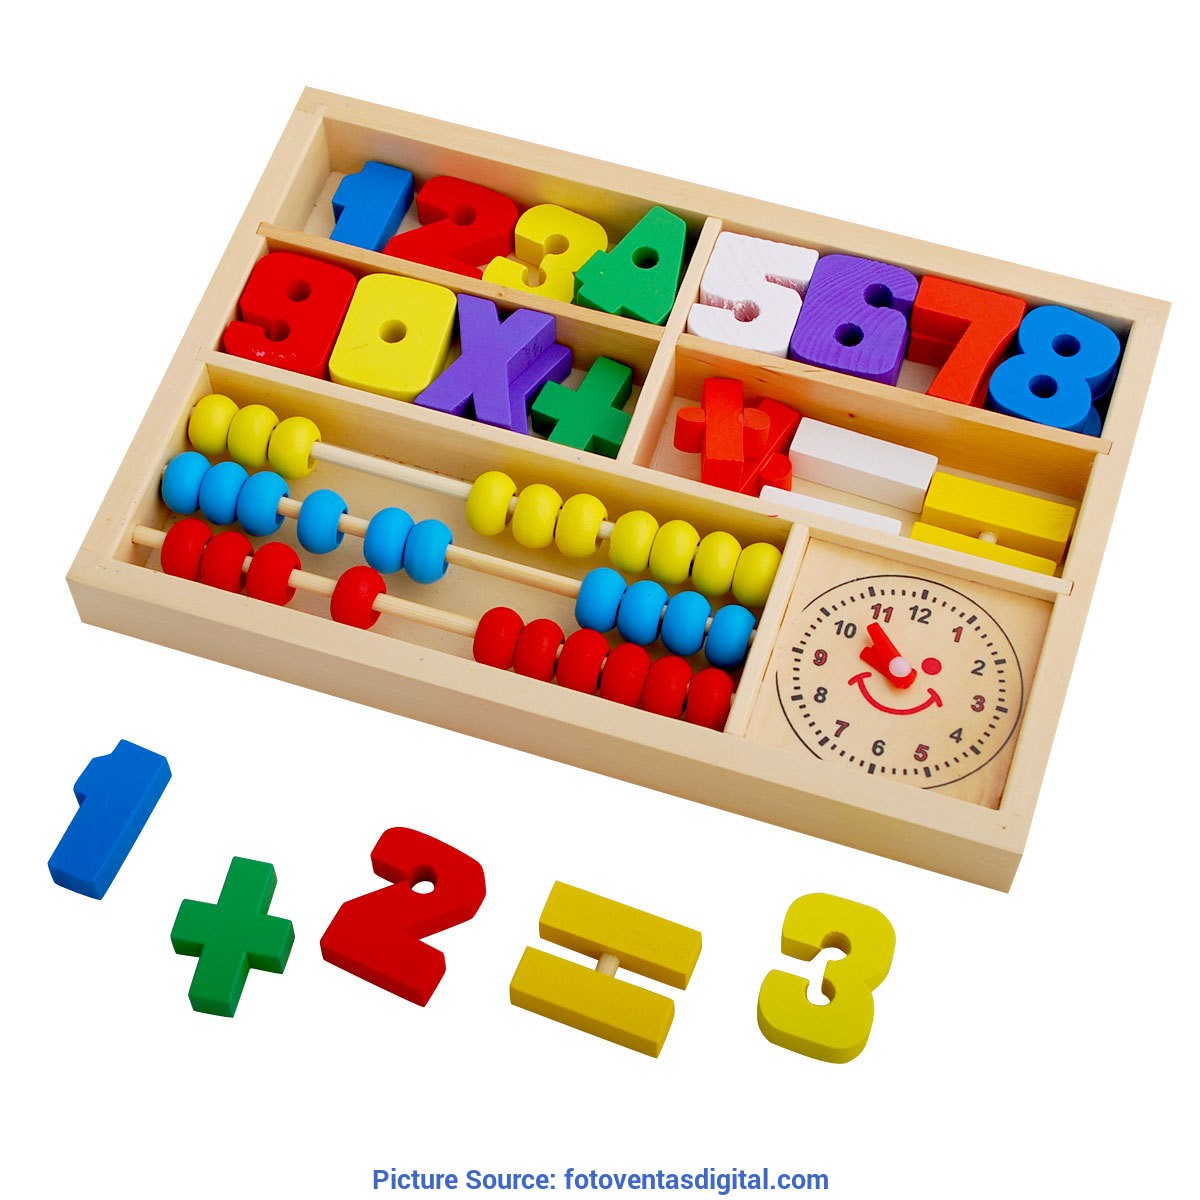 Useful Learning Aids For 2 Year Olds Clever Kids With Year Boy Uk Toys In Year Uk Kids Educational Toy Ota Tech